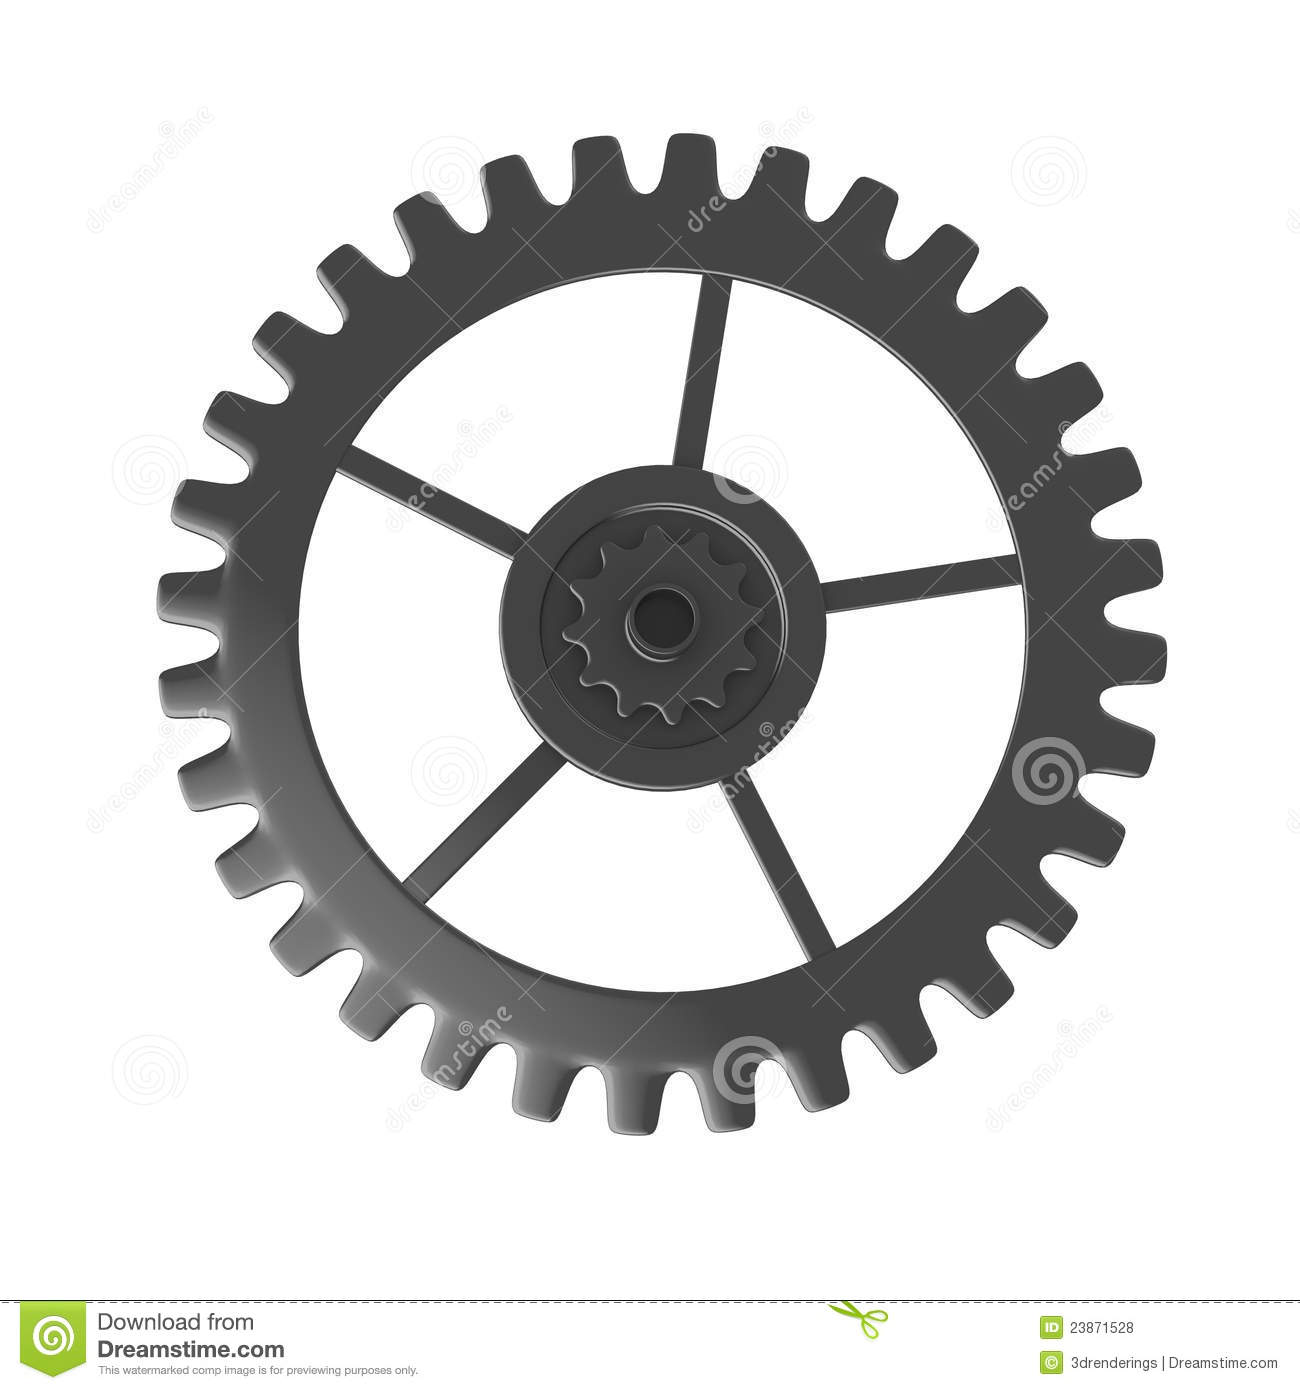 Clock gear wheel